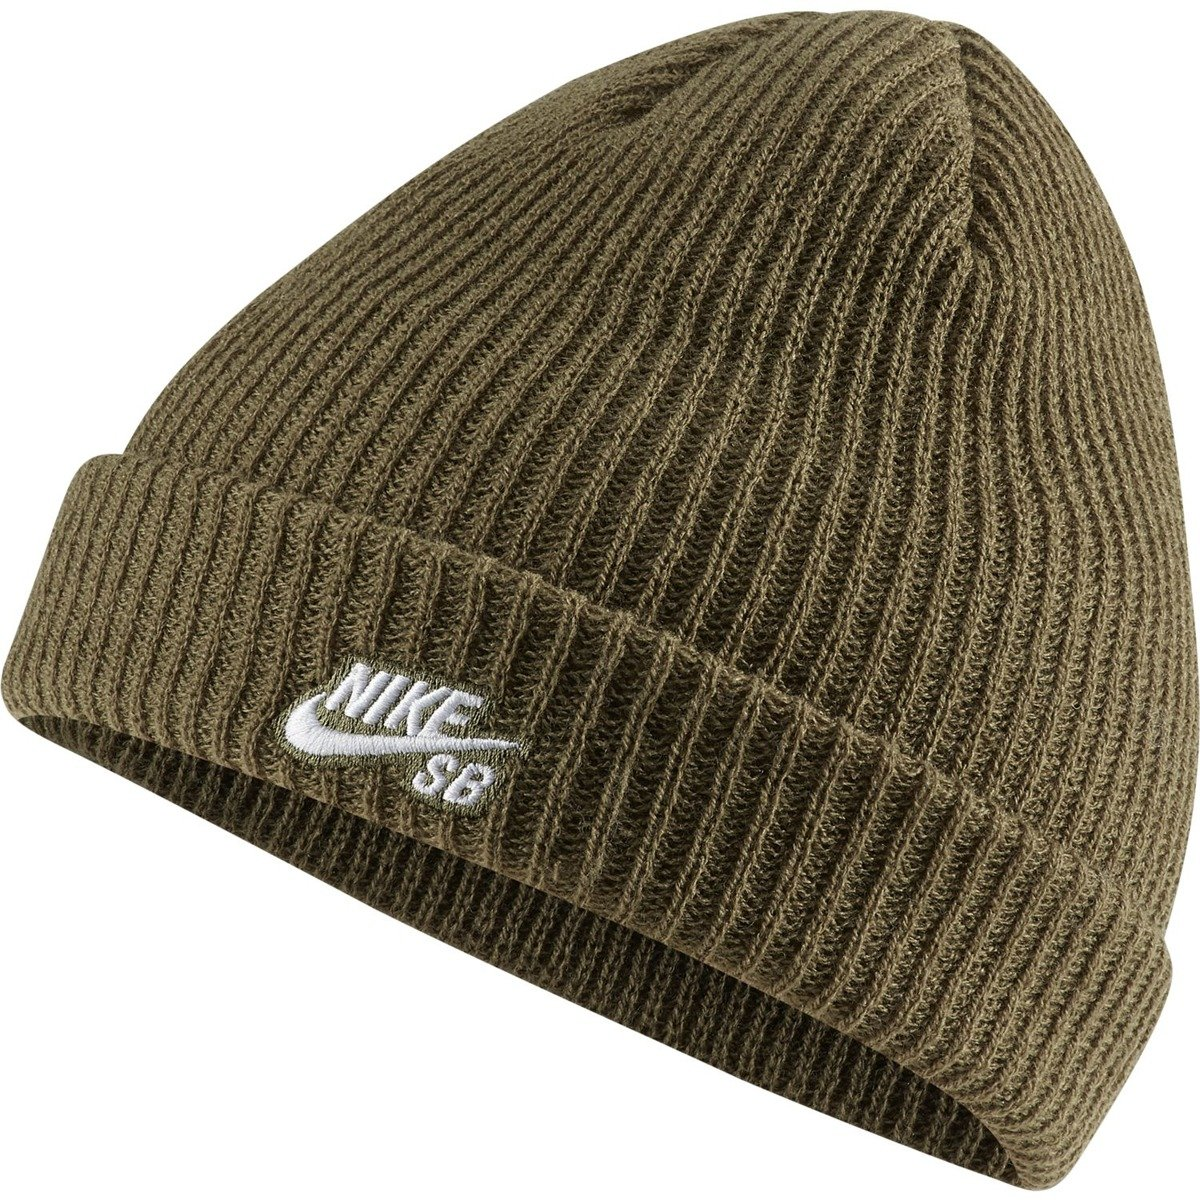 wholesale outlet release date: another chance nike sb fisherman beanie Medium Olive/white